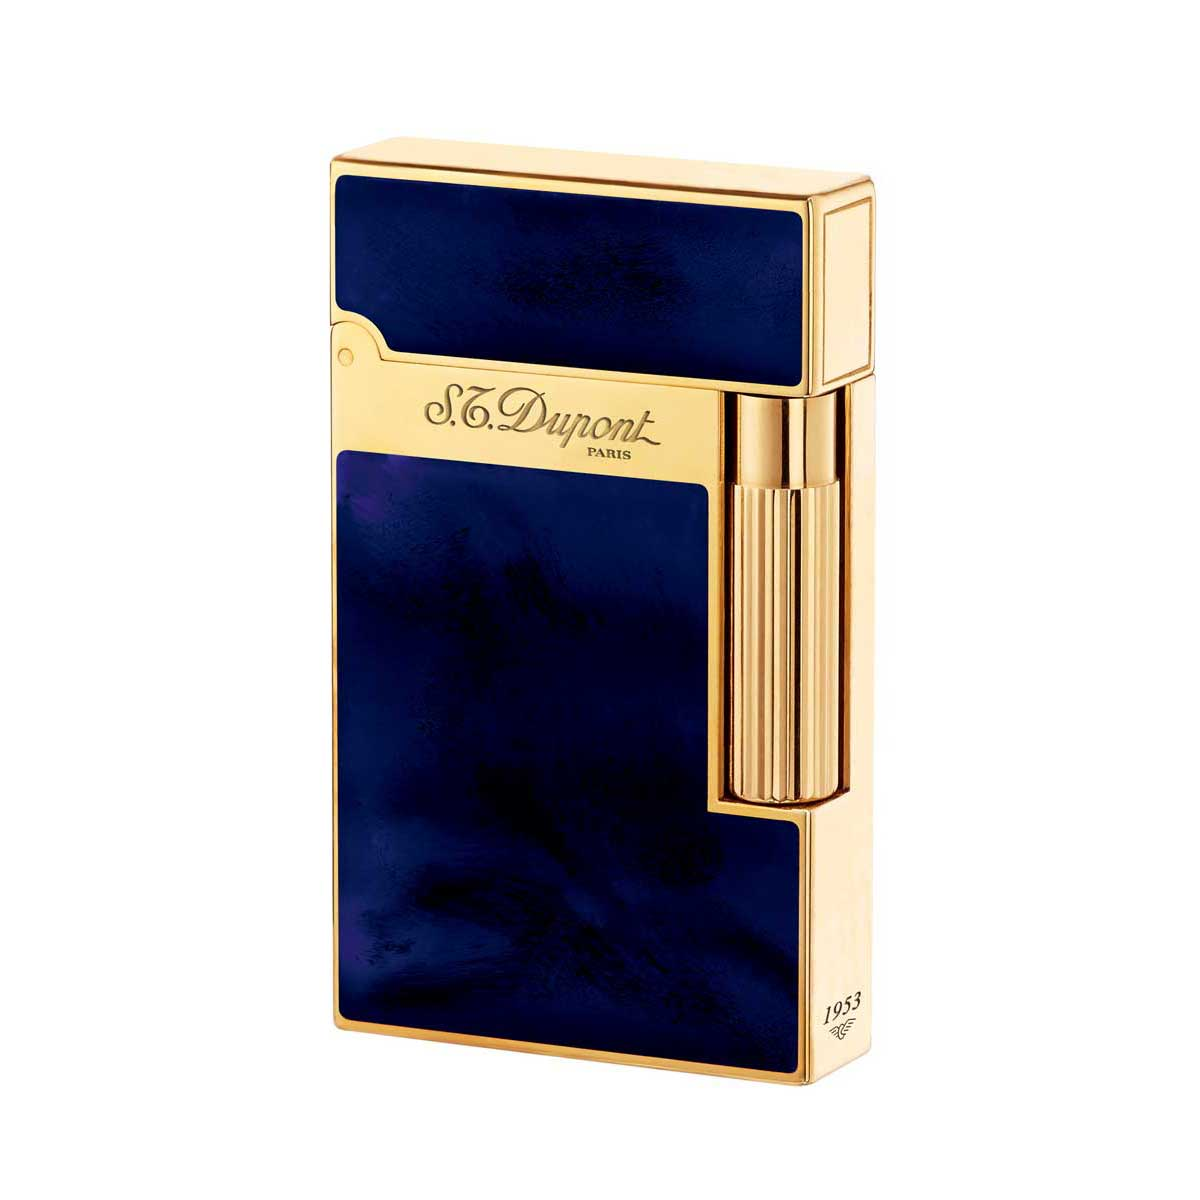 ST Dupont Ligne 2 Atelier Lighter - Navy Blue Chinese Lacquer - Gold